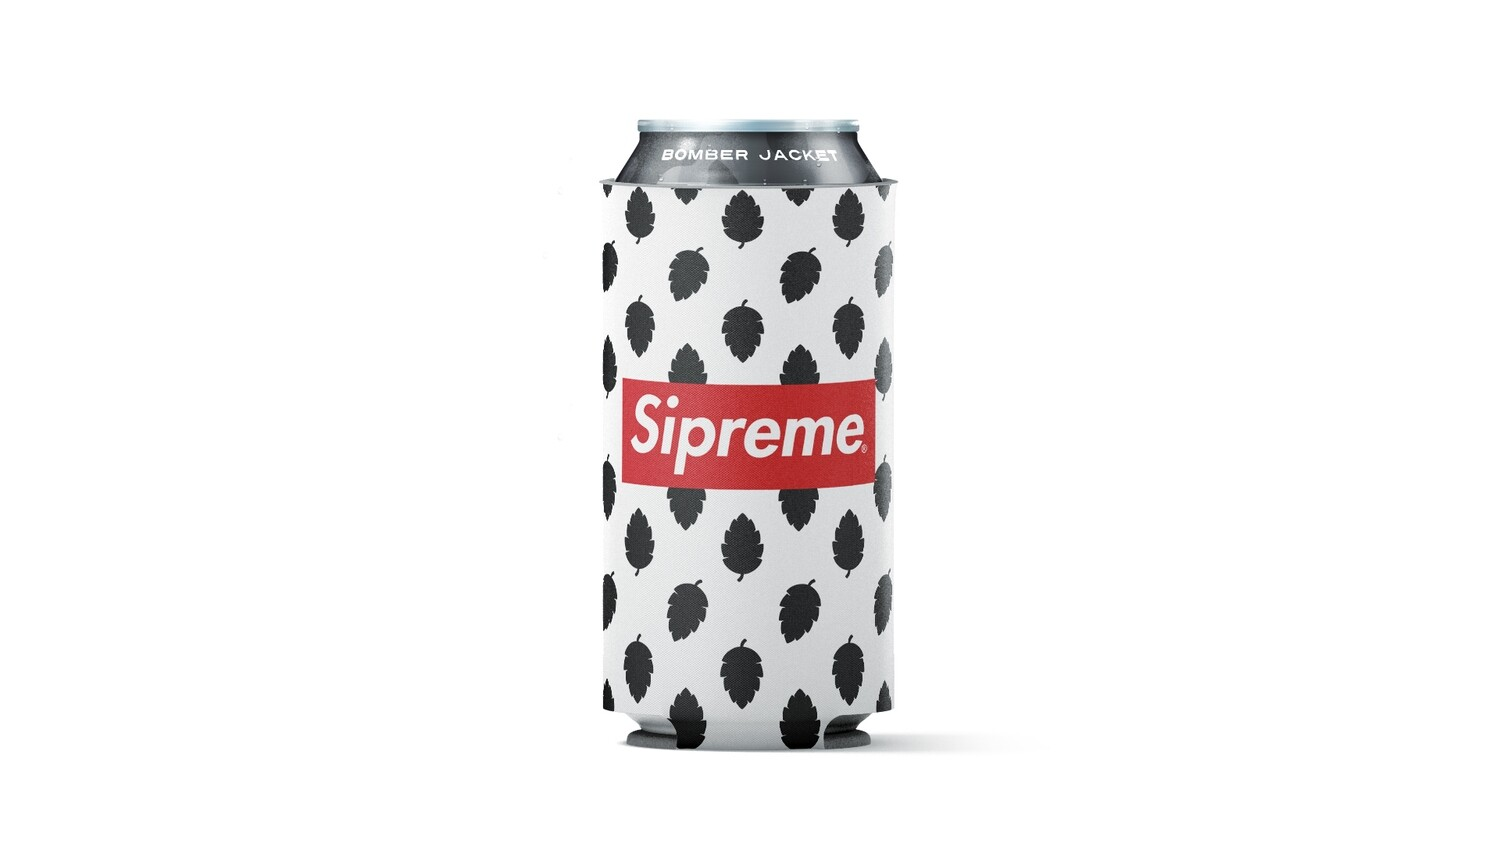 MY BOMBER JACKET SIPREME 2.0 16OZ CAN INSULATED